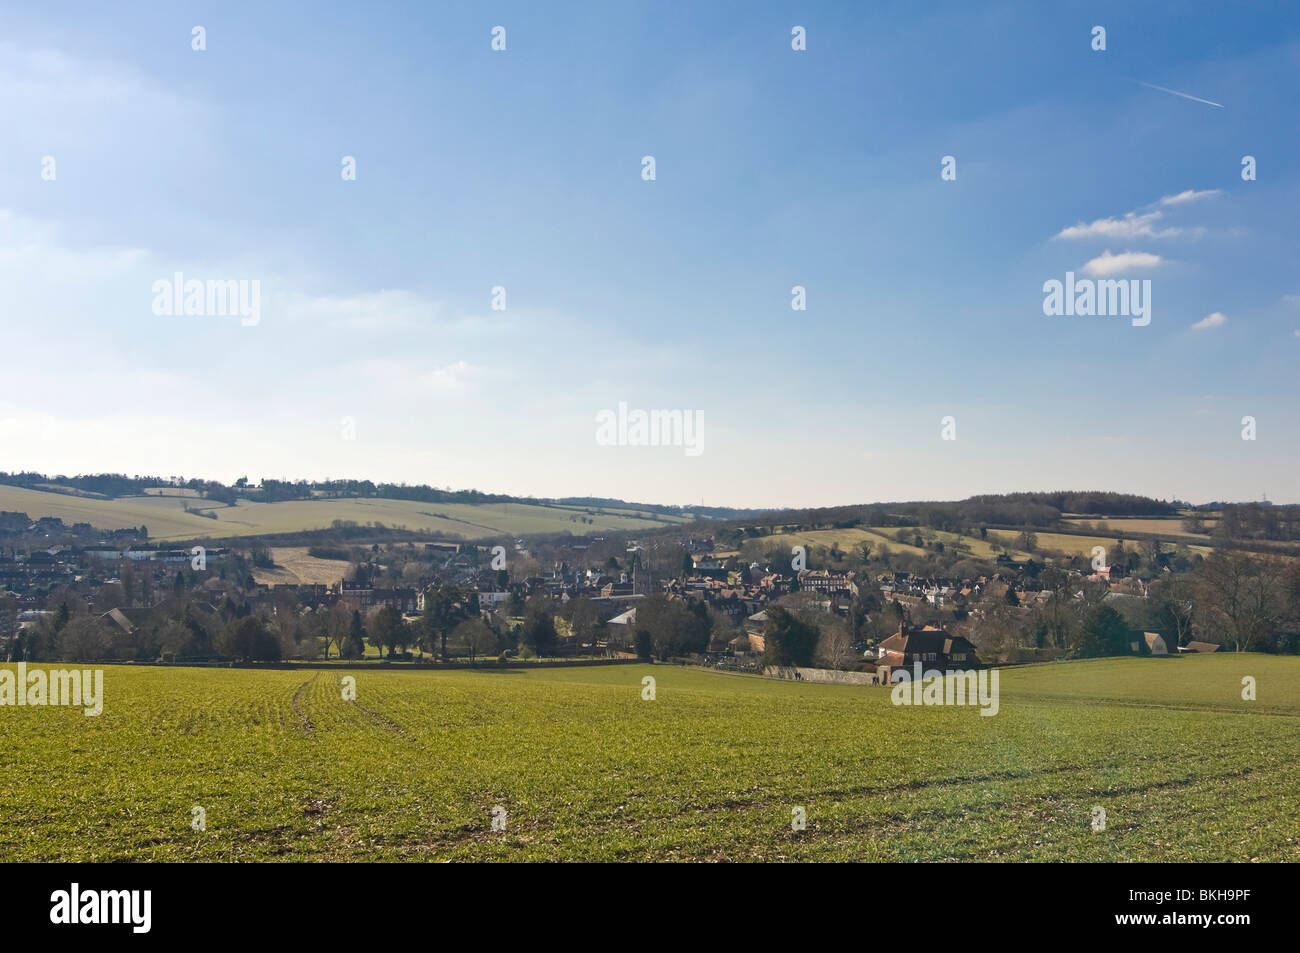 Horizontal wide angle view across the Chiltern Hills of Old Amersham in Buckinghamshire on a sunny spring day. Stock Photo